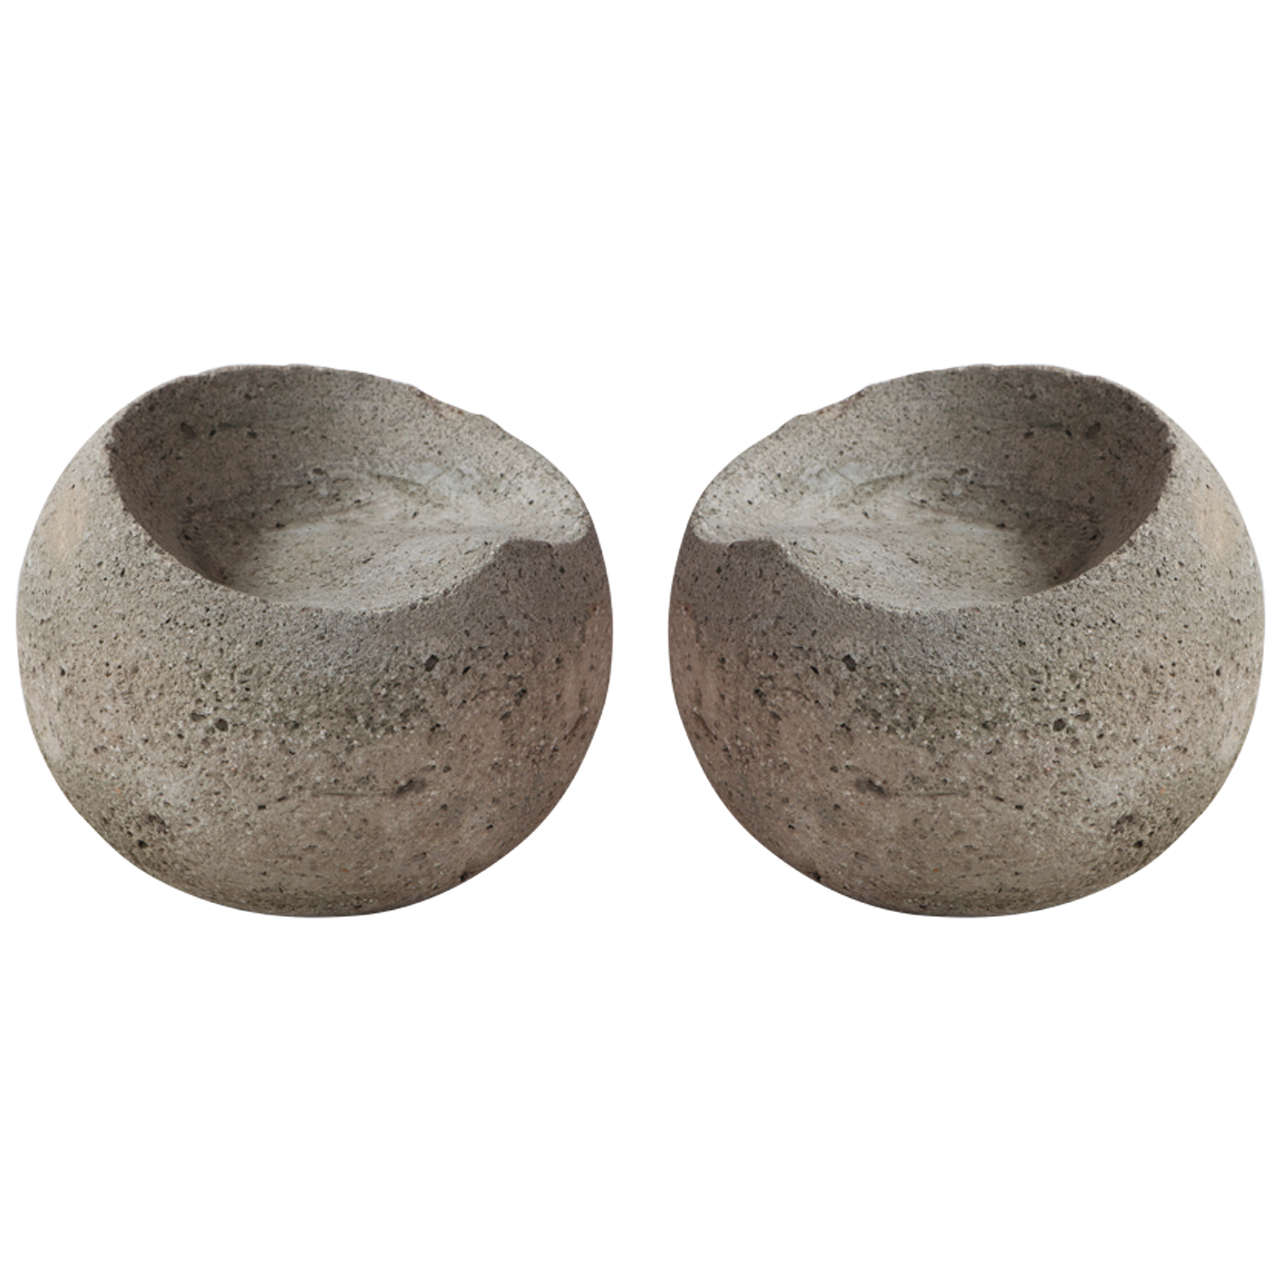 Carved Vintage Concrete Outdoor Sphere Stools At 1stdibs